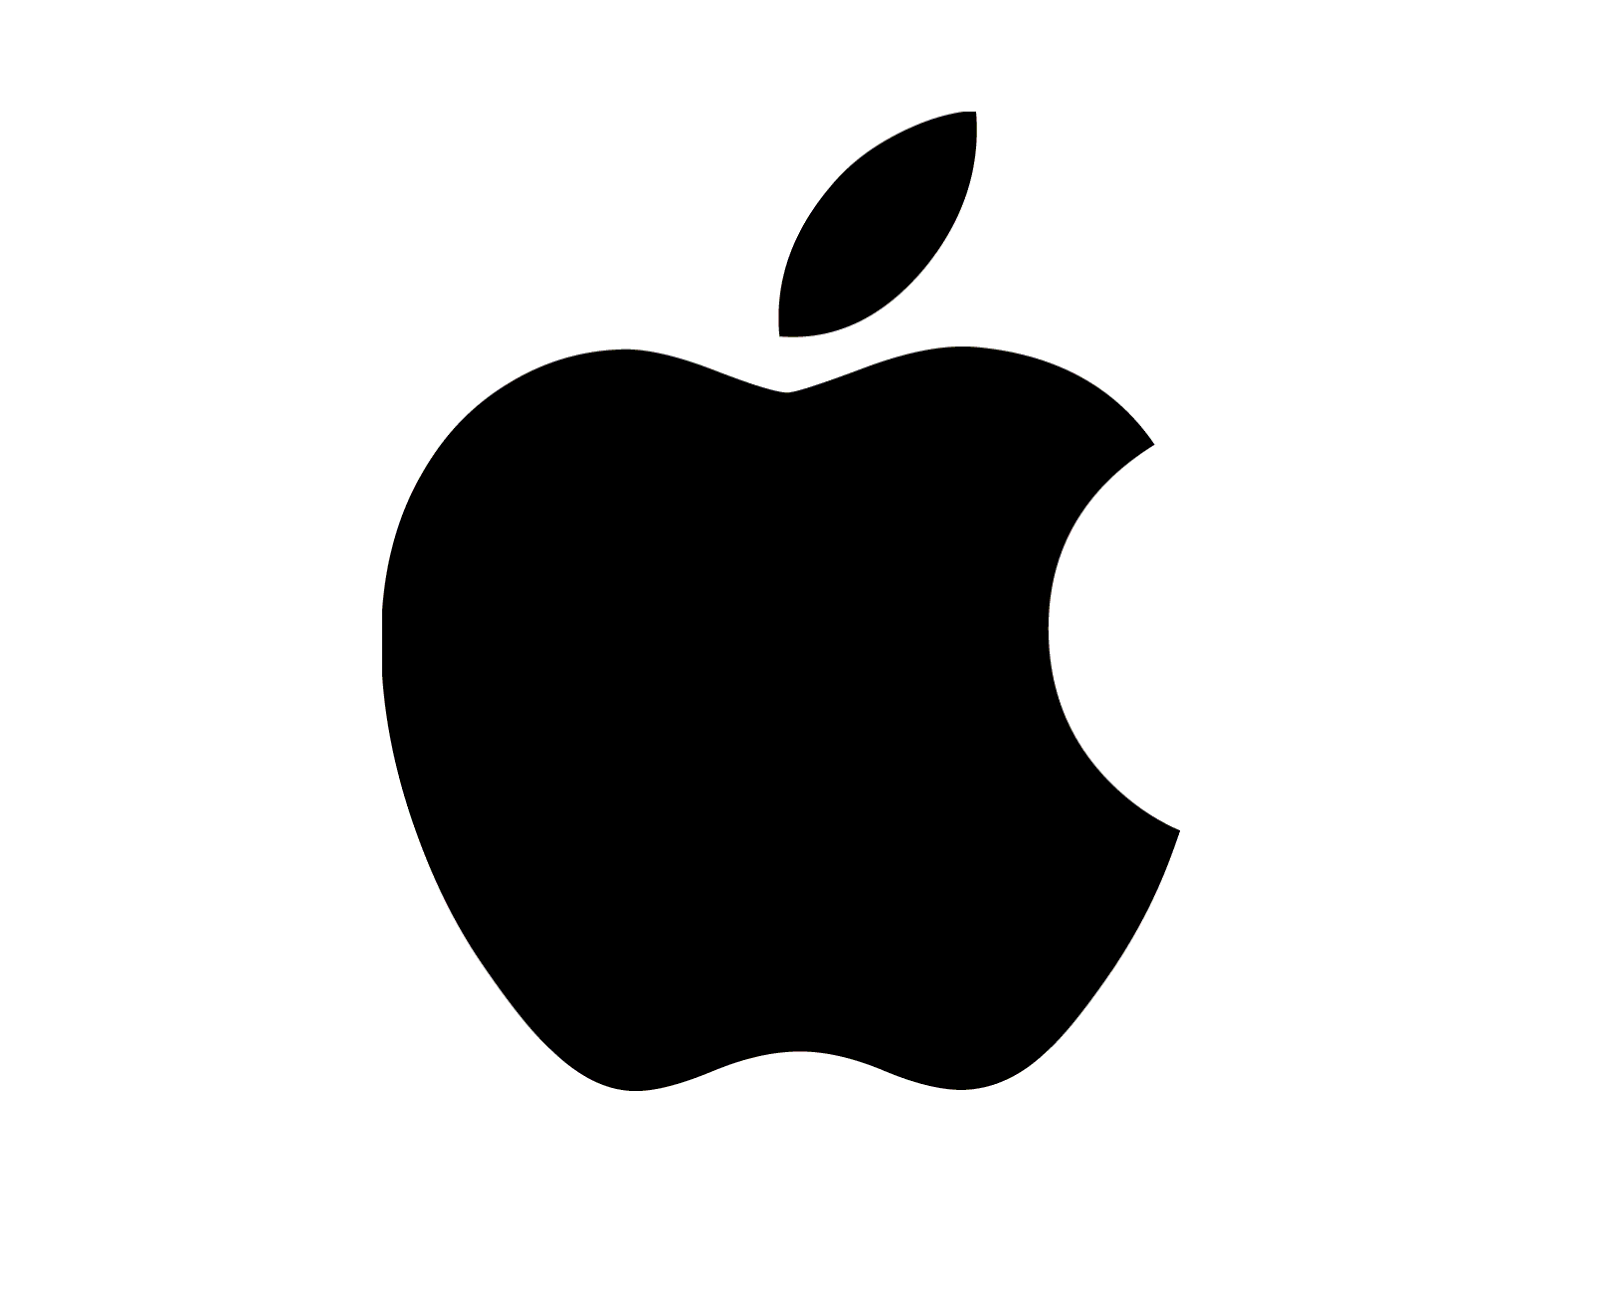 official apple logo. image - official apple logo 2013 pictures 5 hd wallpapers.png | respawnables wiki fandom powered by wikia